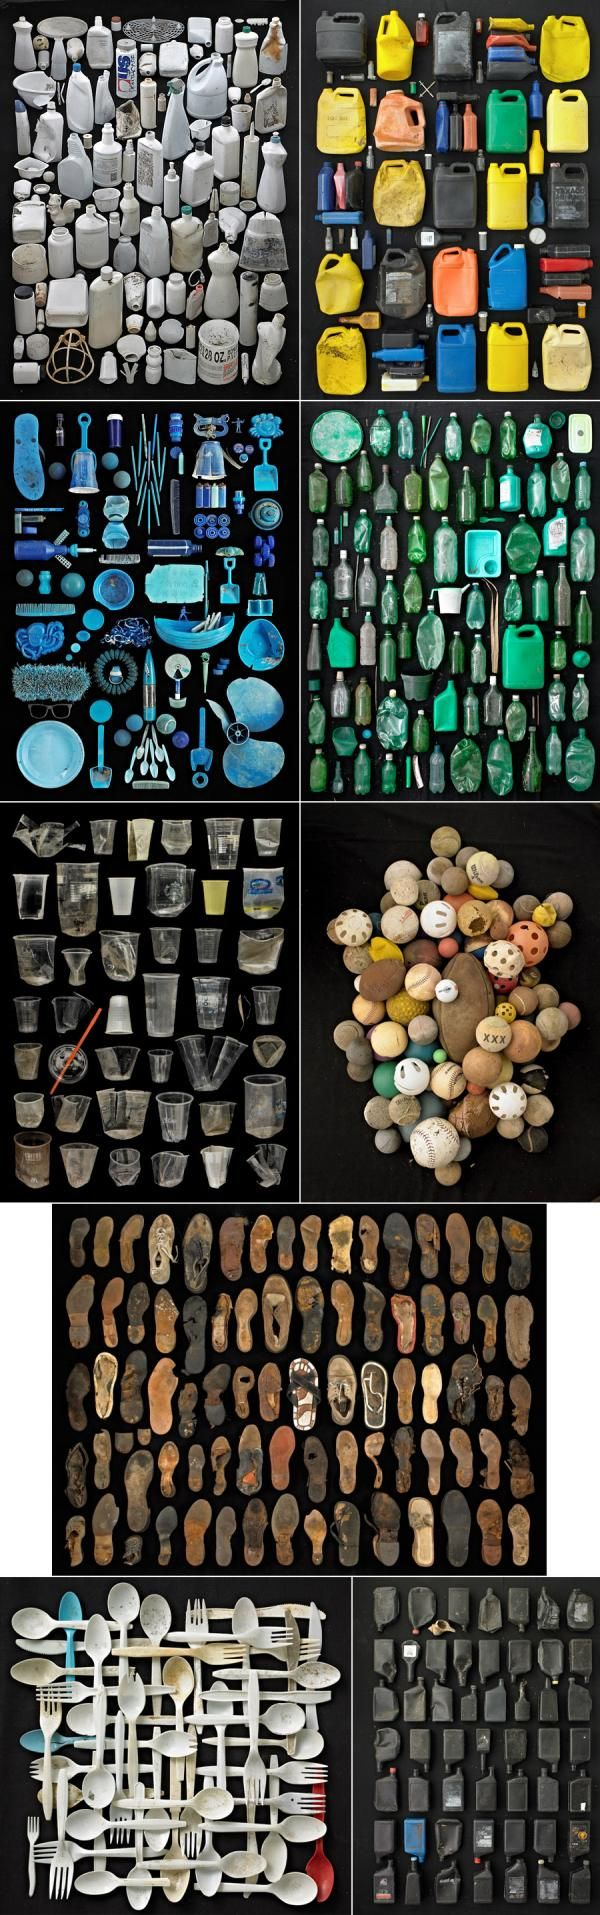 """""""Found in Nature"""" Turns Pollution into the Solution. Barry Rosenthal is a New York photographer who stumbled onto using trash as an artistic medium after years of shooting plants in nature and realizing there was so much garbage littering these areas."""